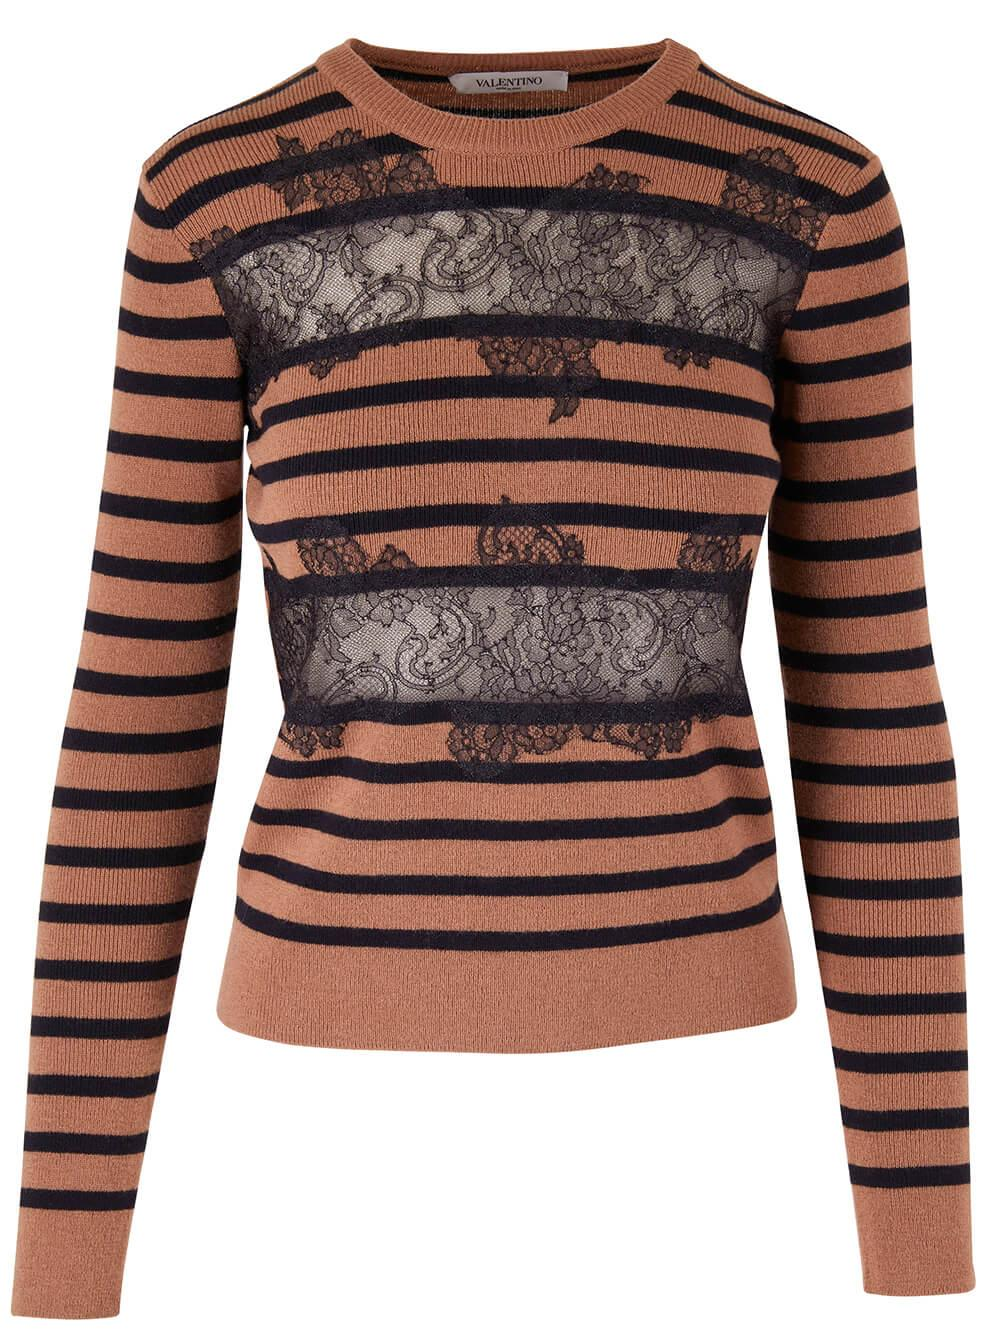 Striped Sweater With Lace Applique Item # WB3KC24V6M7